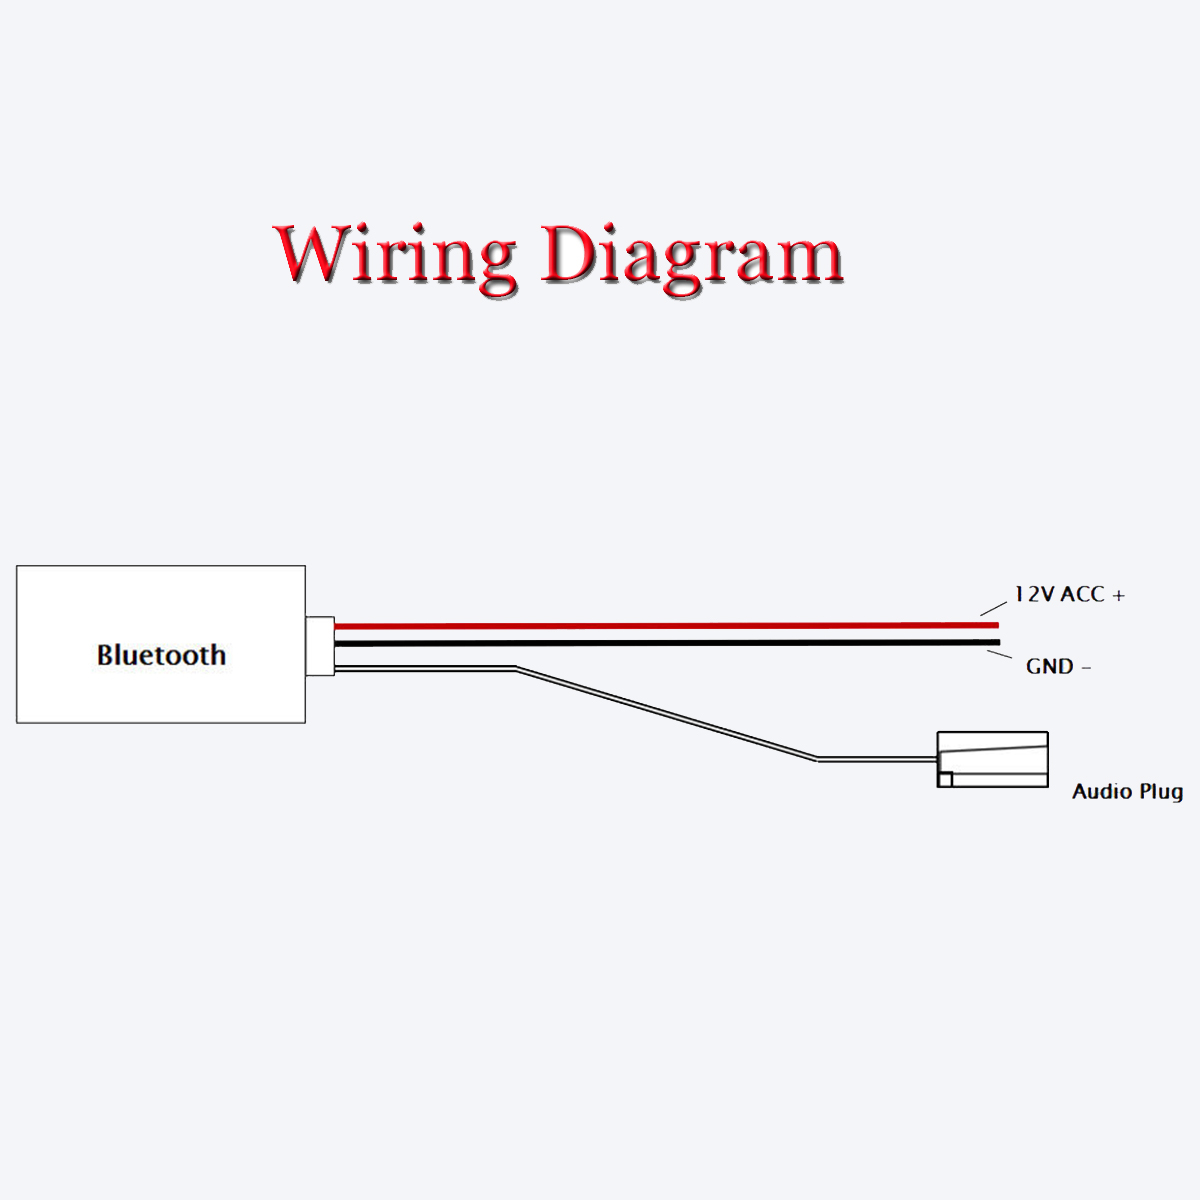 medium resolution of aux wire wiring diagram wire management wiring diagram aux cord wiring diagram aux cord wire